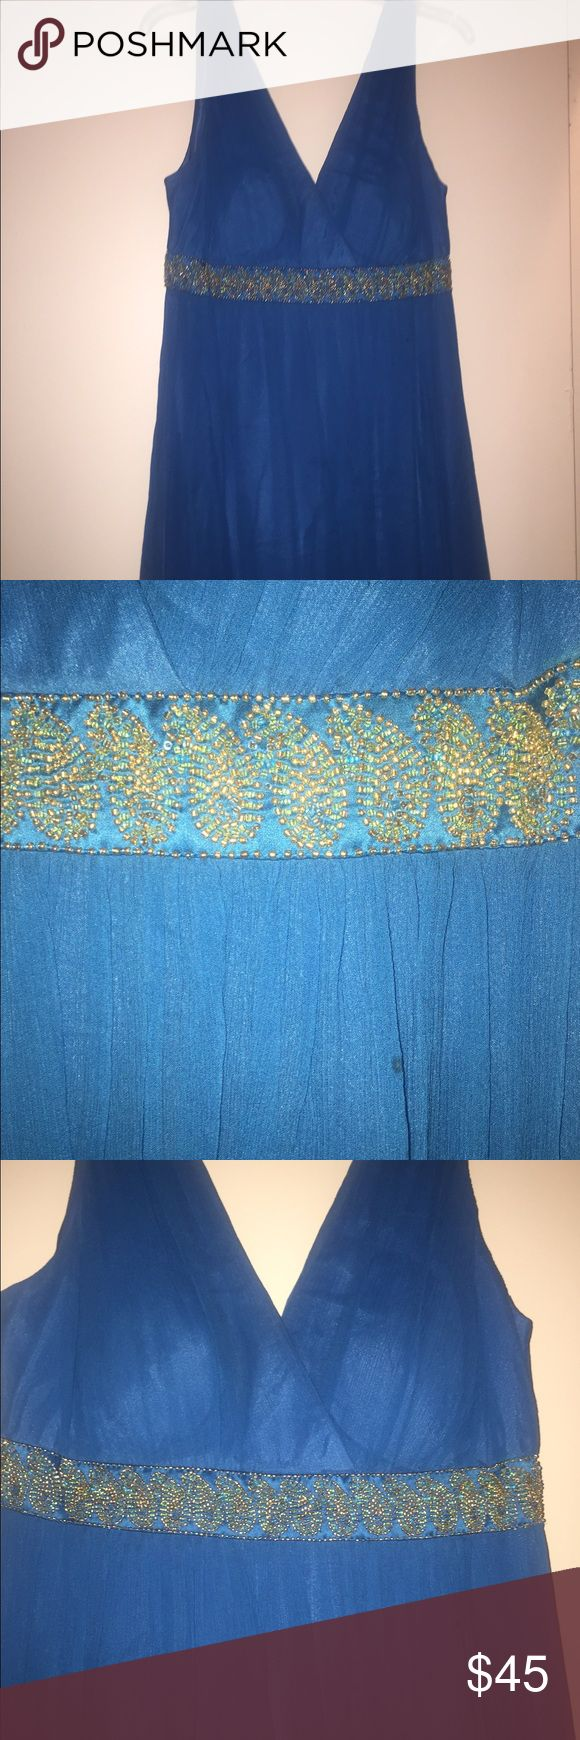 Blue Aztec Cocktail Dress Worn once. Maggy London blue with gold and blue beading at empire waist. Has one tiny stain size of a marker tip on the dress which is pictured near beading. Make an offer! Maggy London Dresses